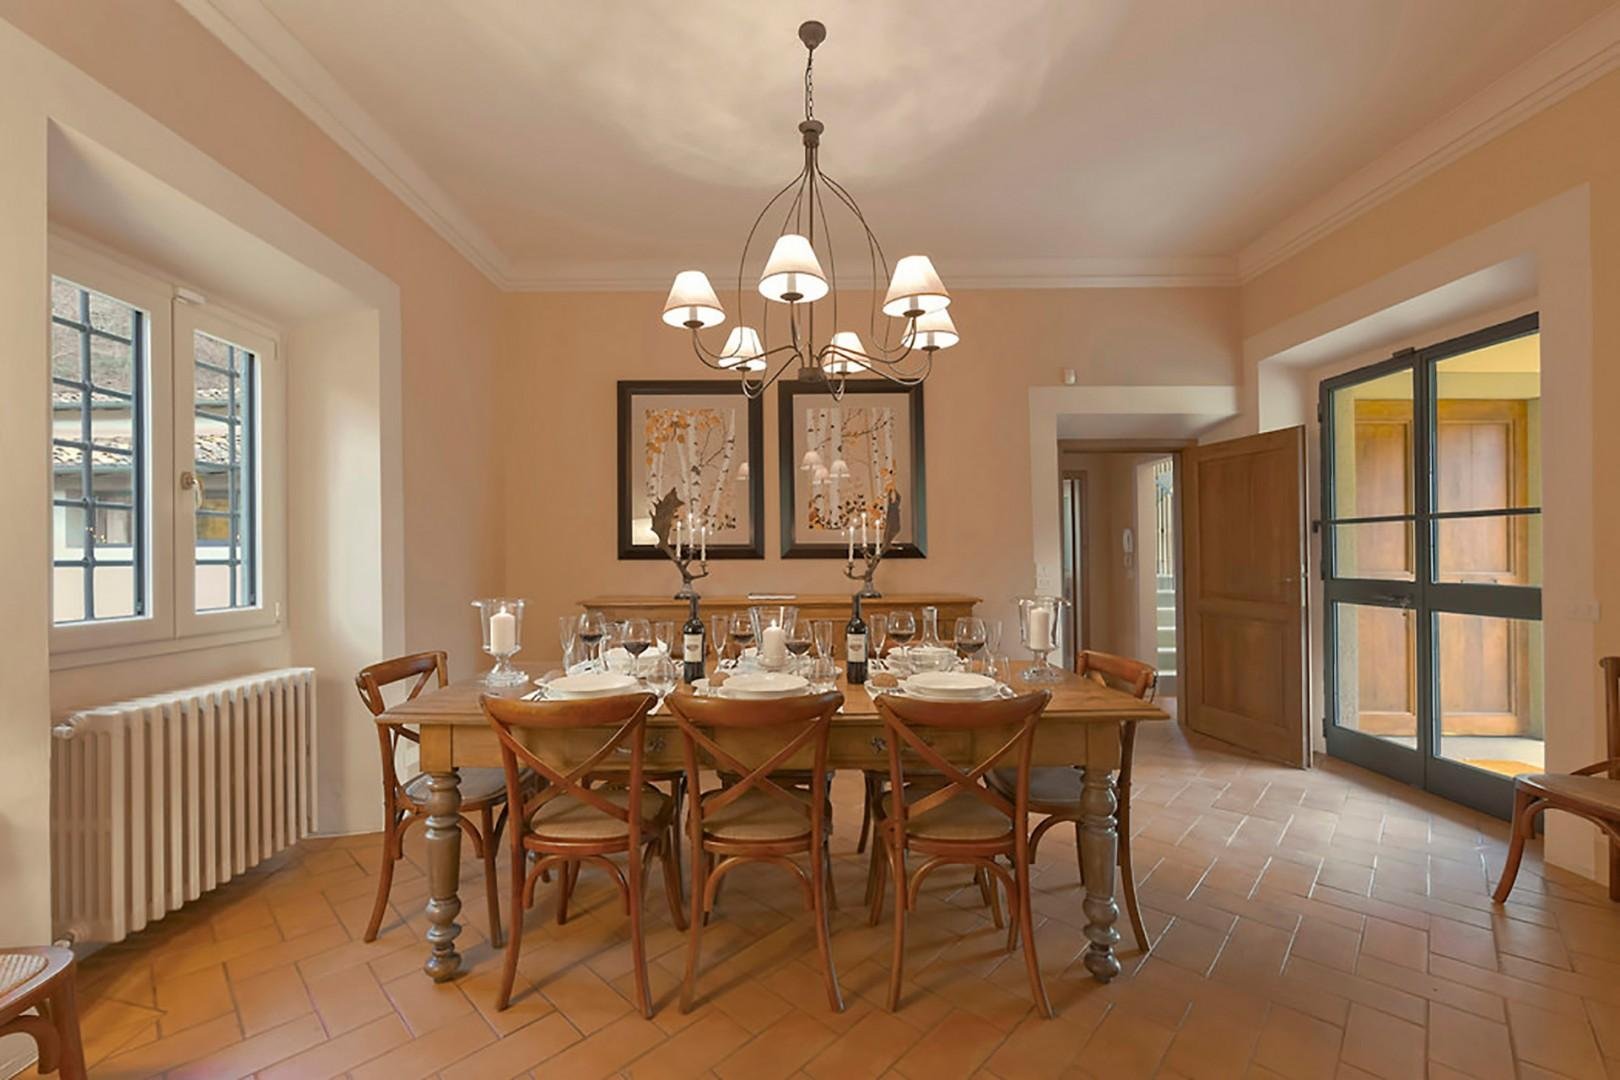 Dining table seats 8.